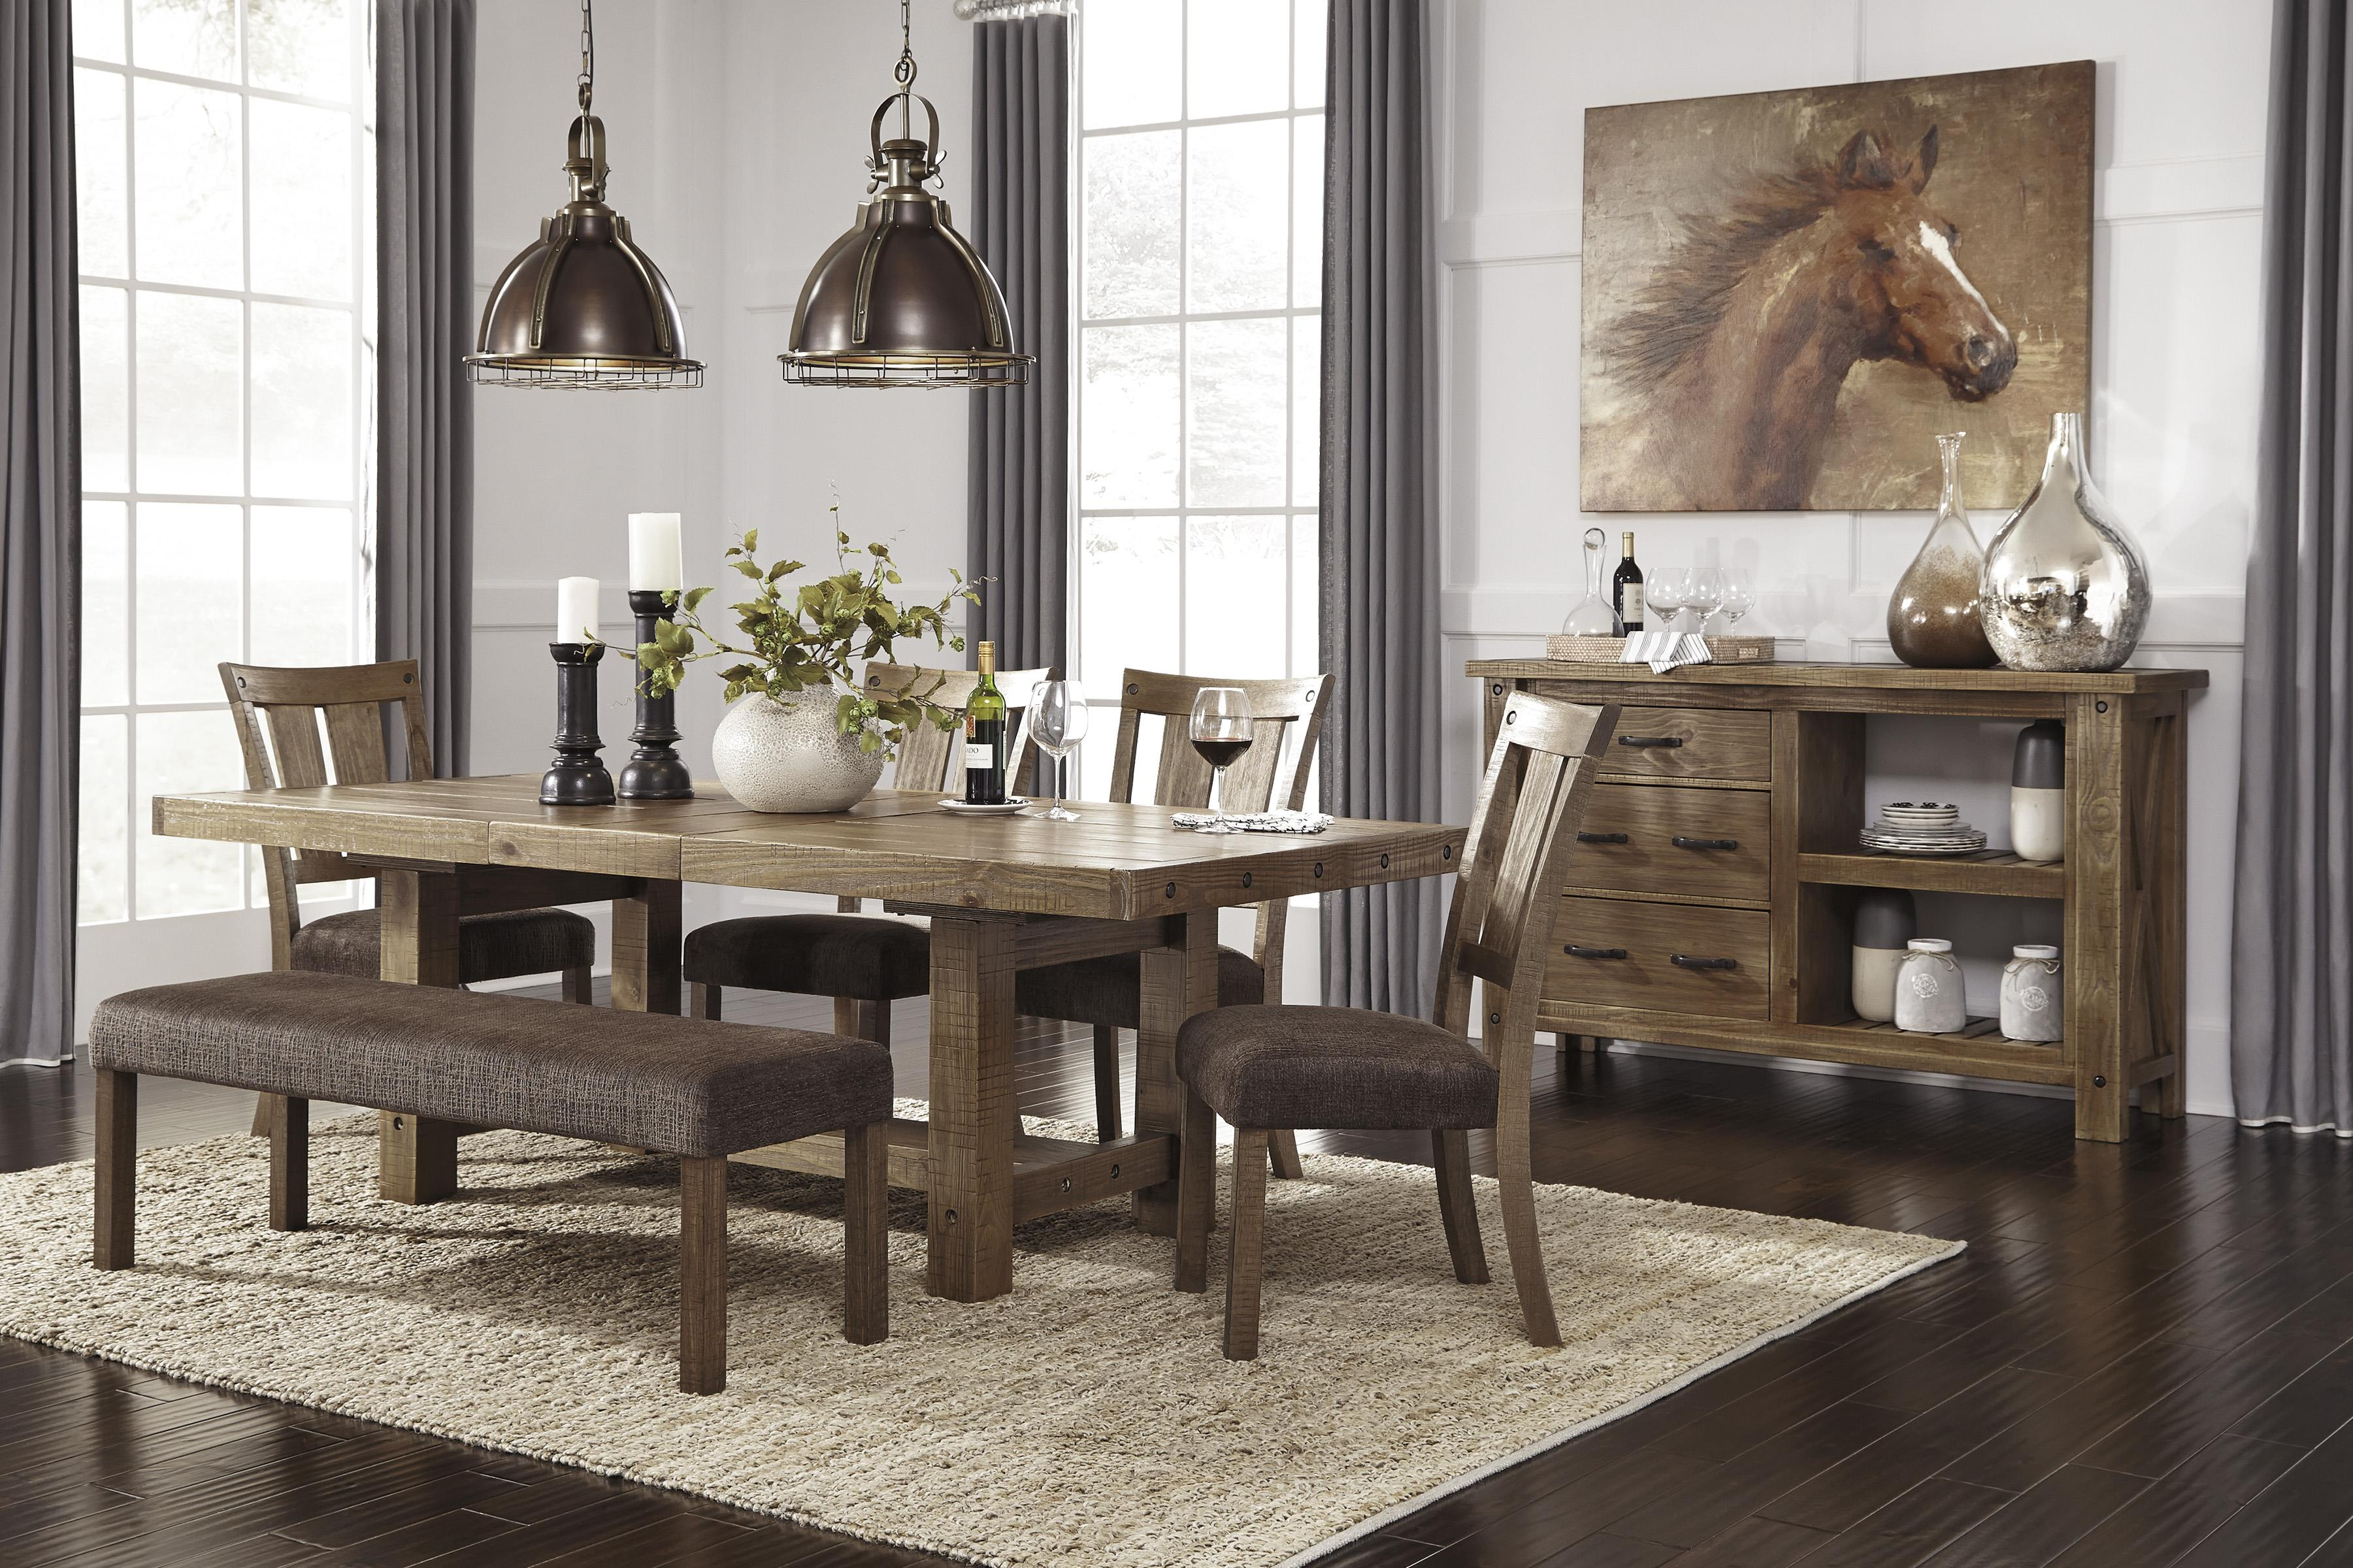 Upholstered Dining Room Bench by Signature Design by